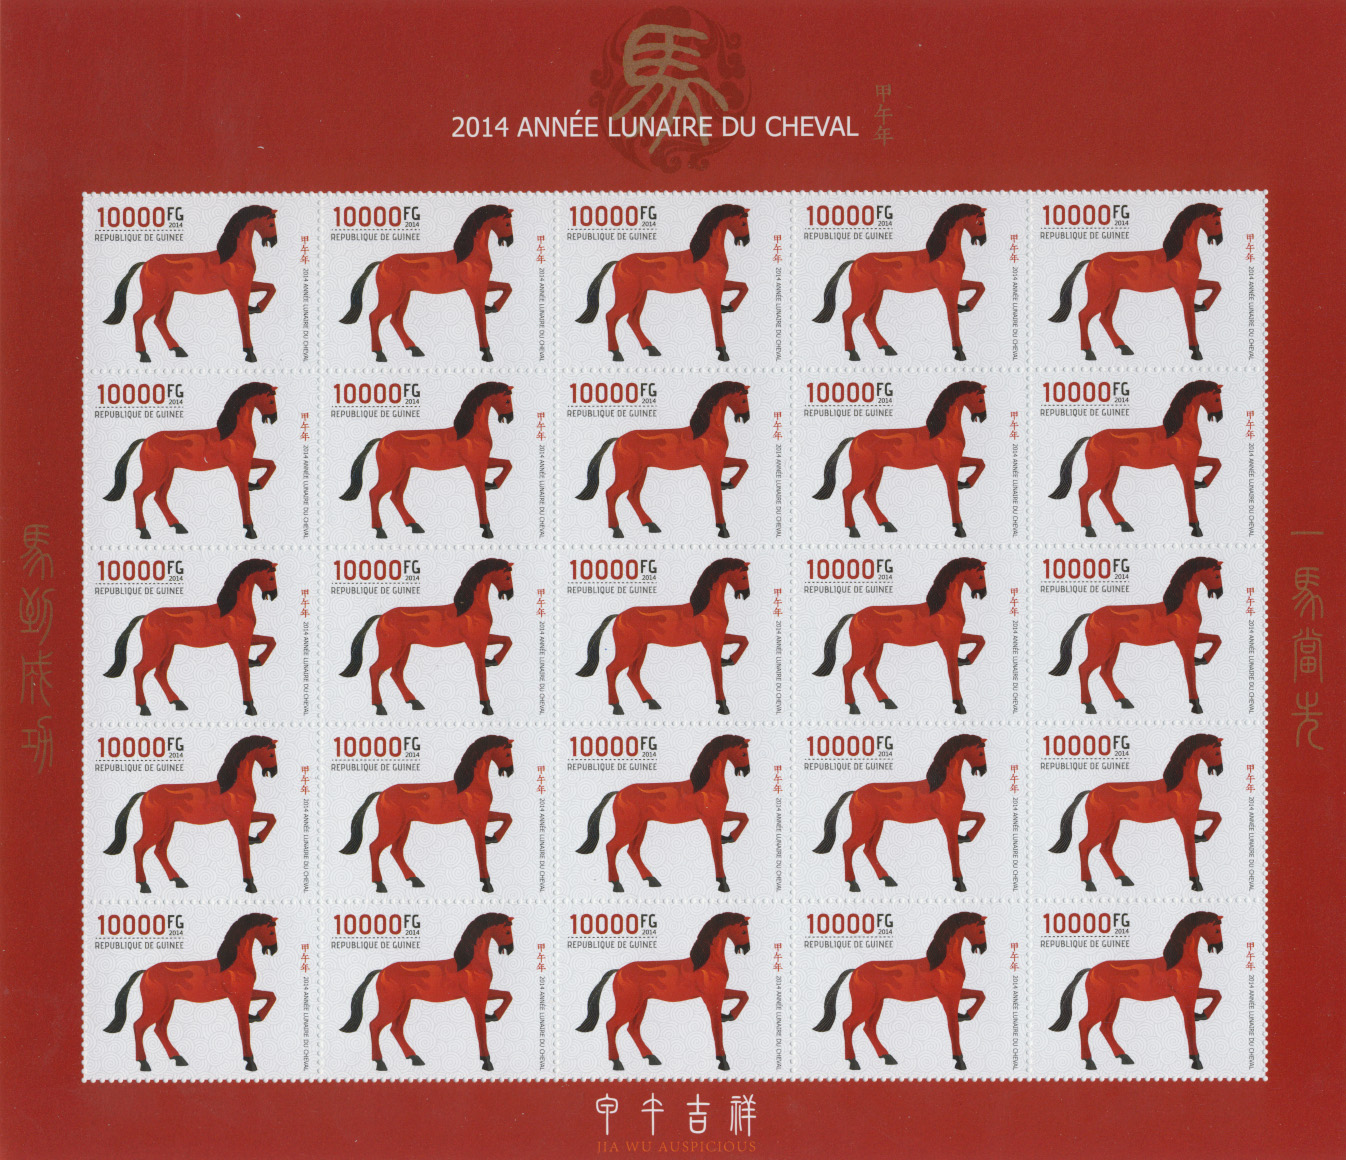 Lunar year of horse 25v - Issue of Guinée postage stamps